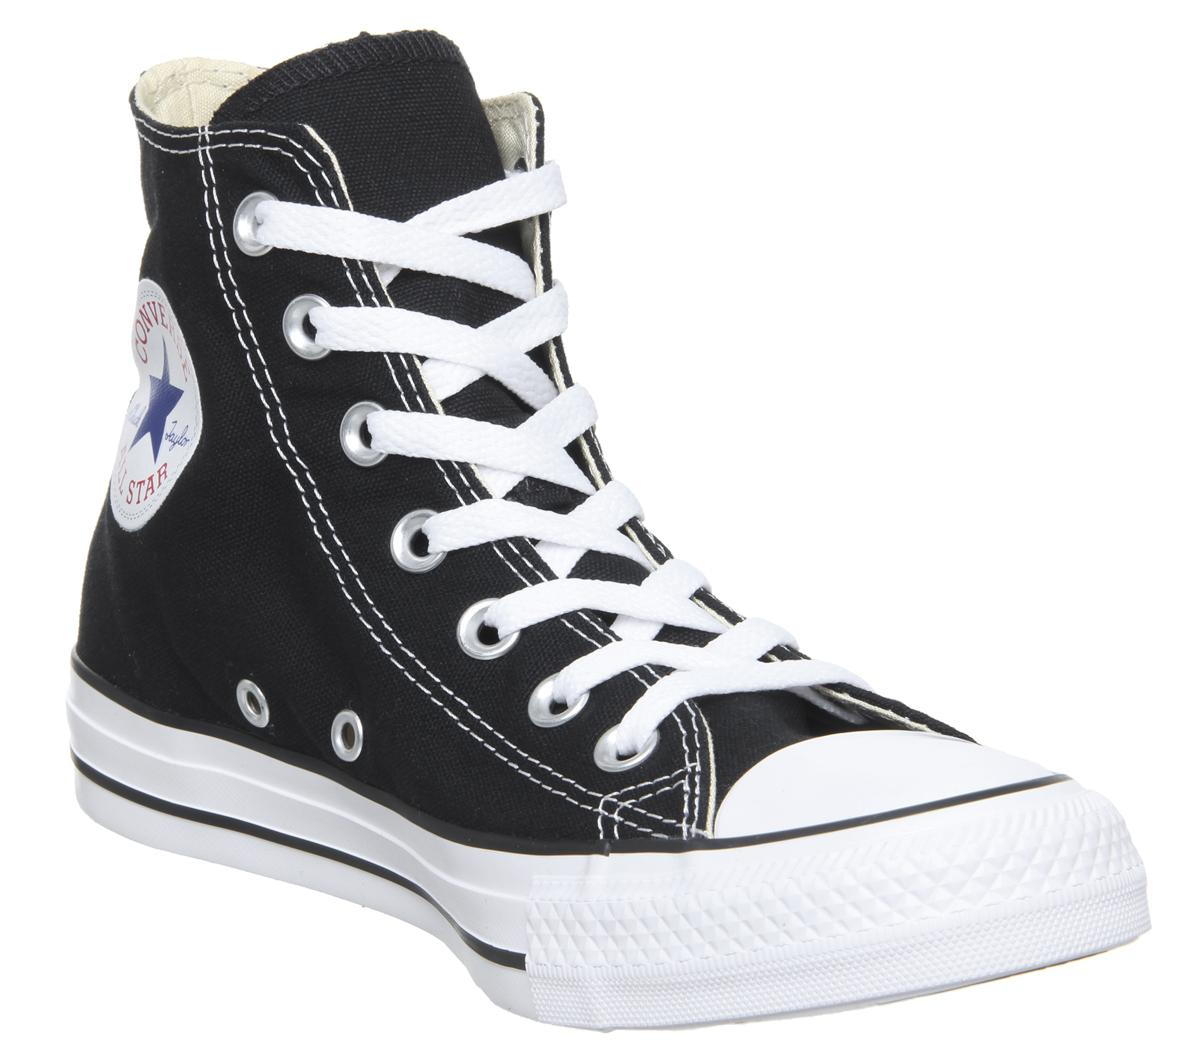 4b80e42cf24b Converse All Star Hi Trainers Black Canvas - Unisex Sports